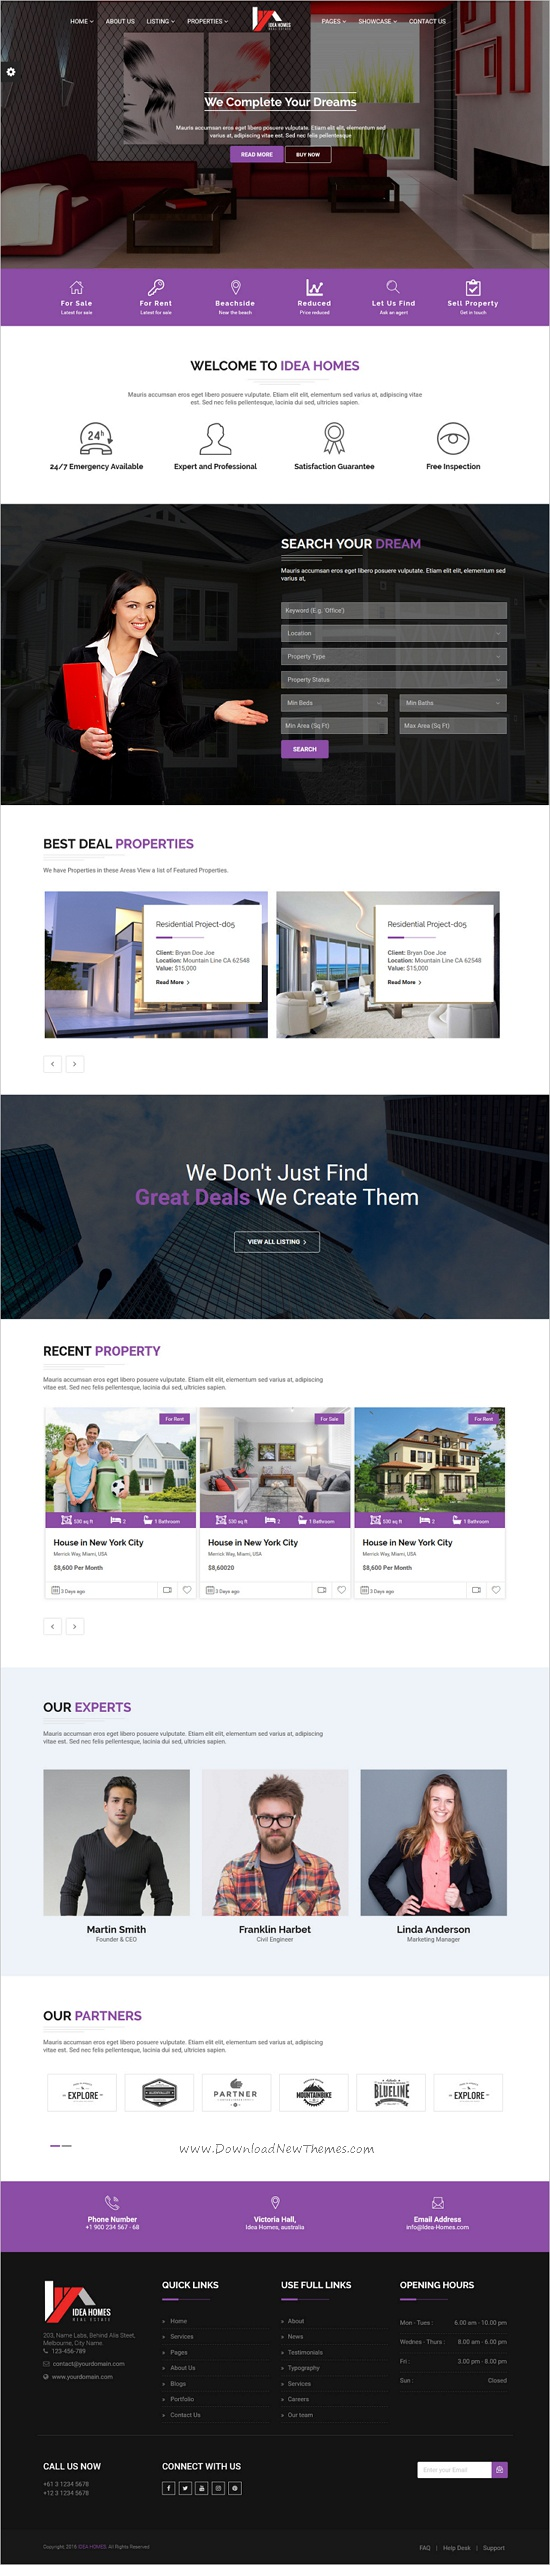 Real Estate Template%0A DreamVilla  Real Estate HTML Template  Business  Download  agents   apartment  estate  flat  home  house  multiproperties  realestate   realestate u